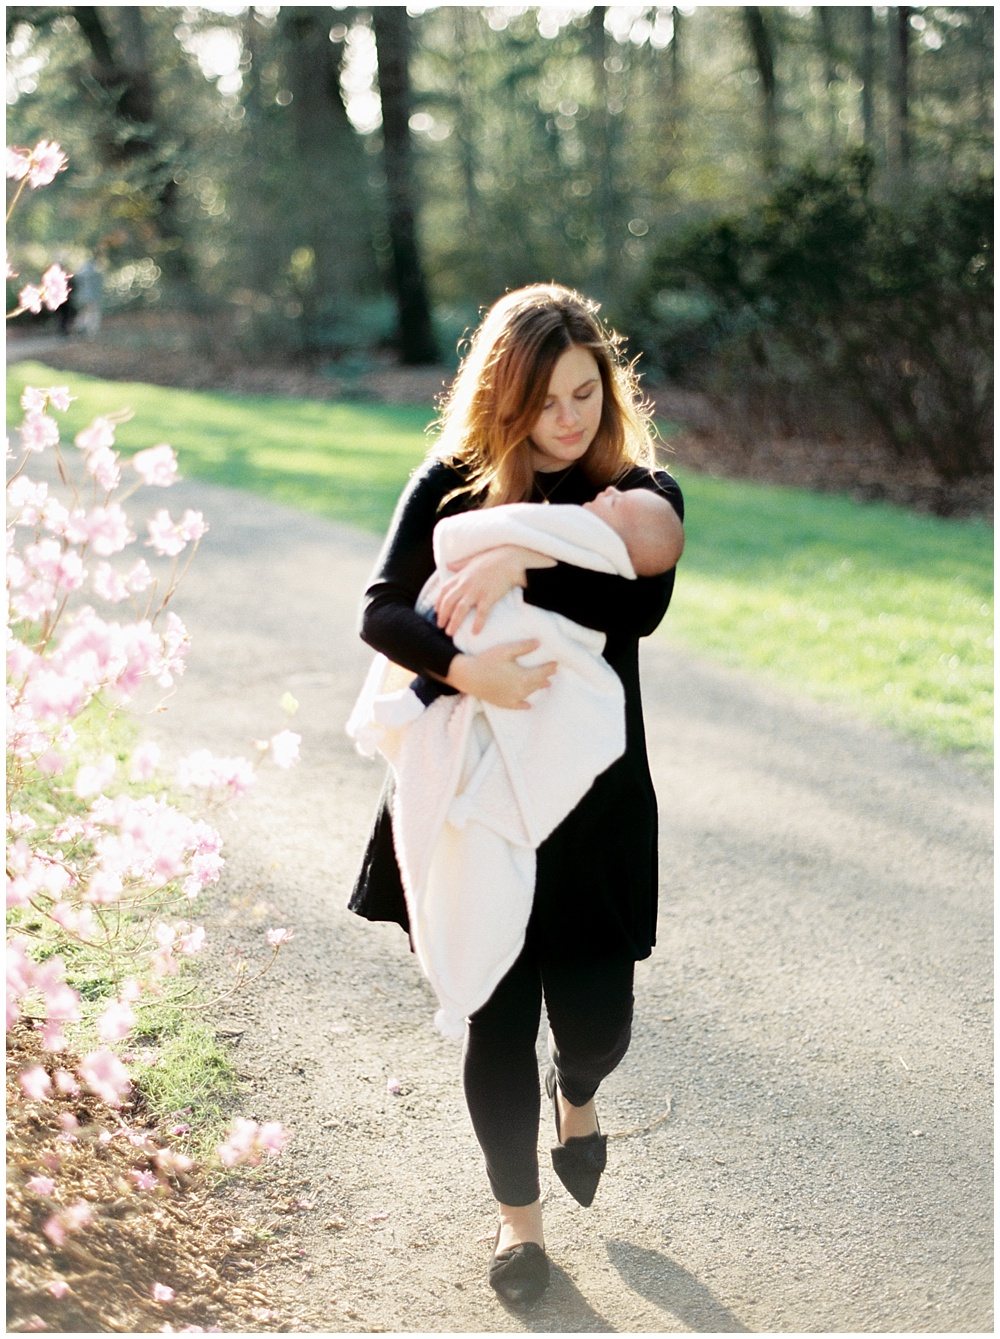 Fine Art Film Family Photographer | Sarah Carpenter Family Photography | Seattle Family Photography and Destinations Worldwide